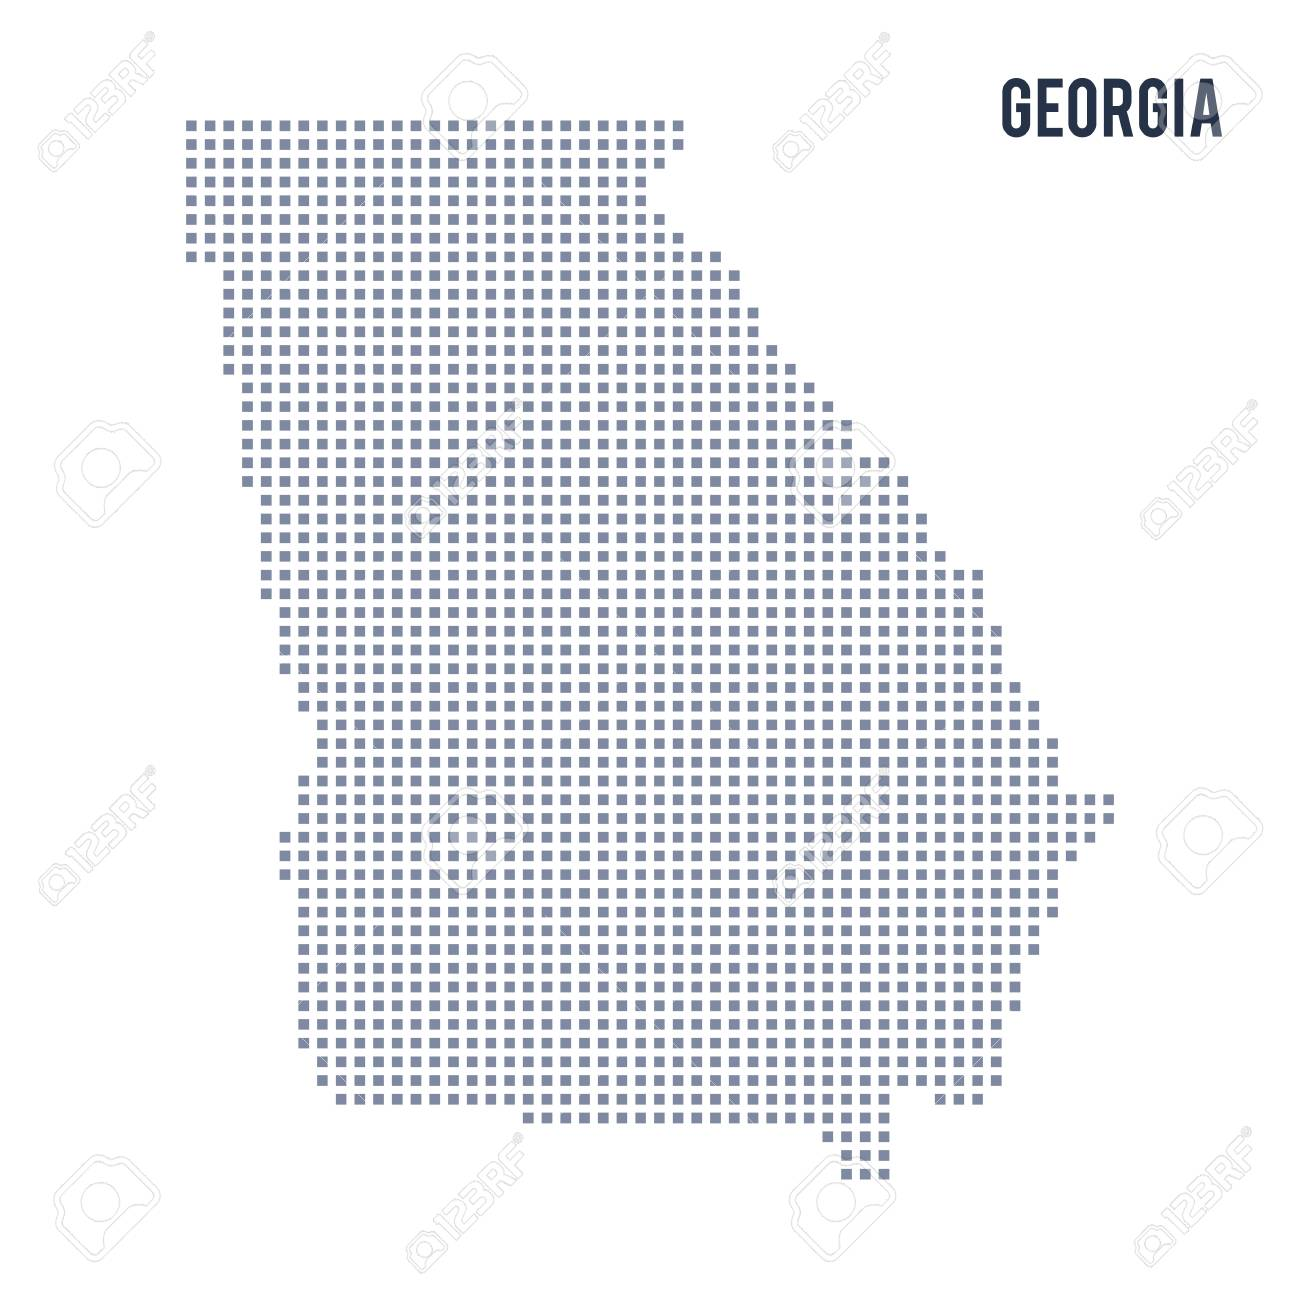 Map Of The State Of Georgia.Vector Pixel Map State Of Georgia Isolated On White Background